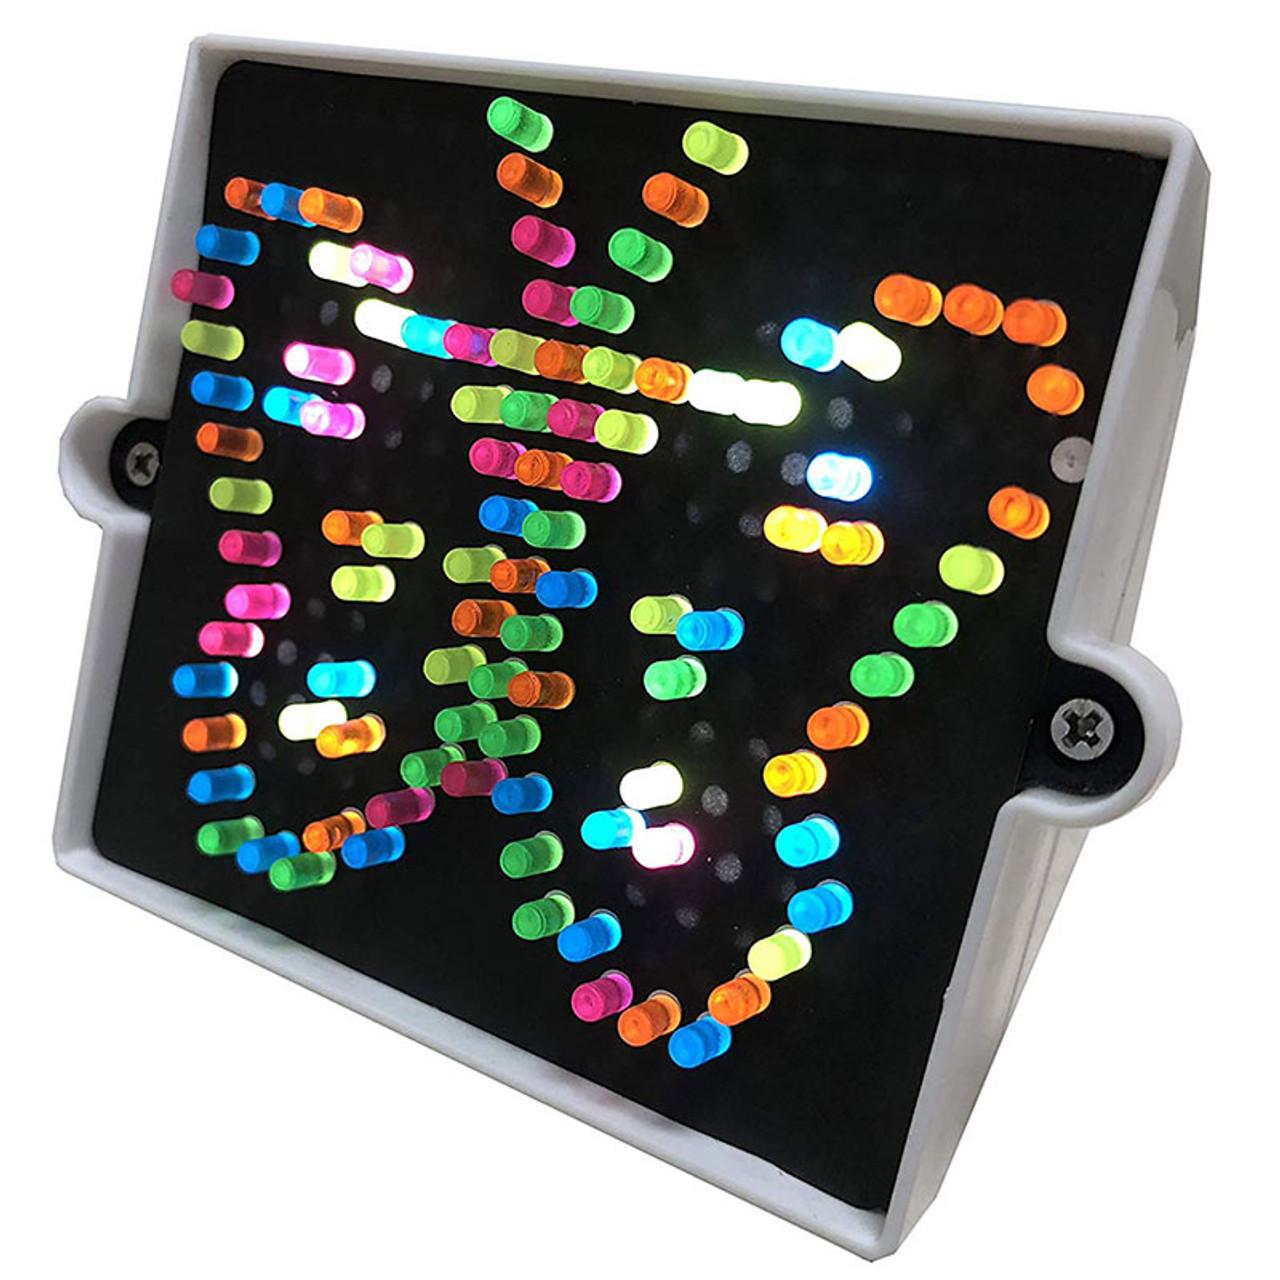 World's Smallest Lite-Brite